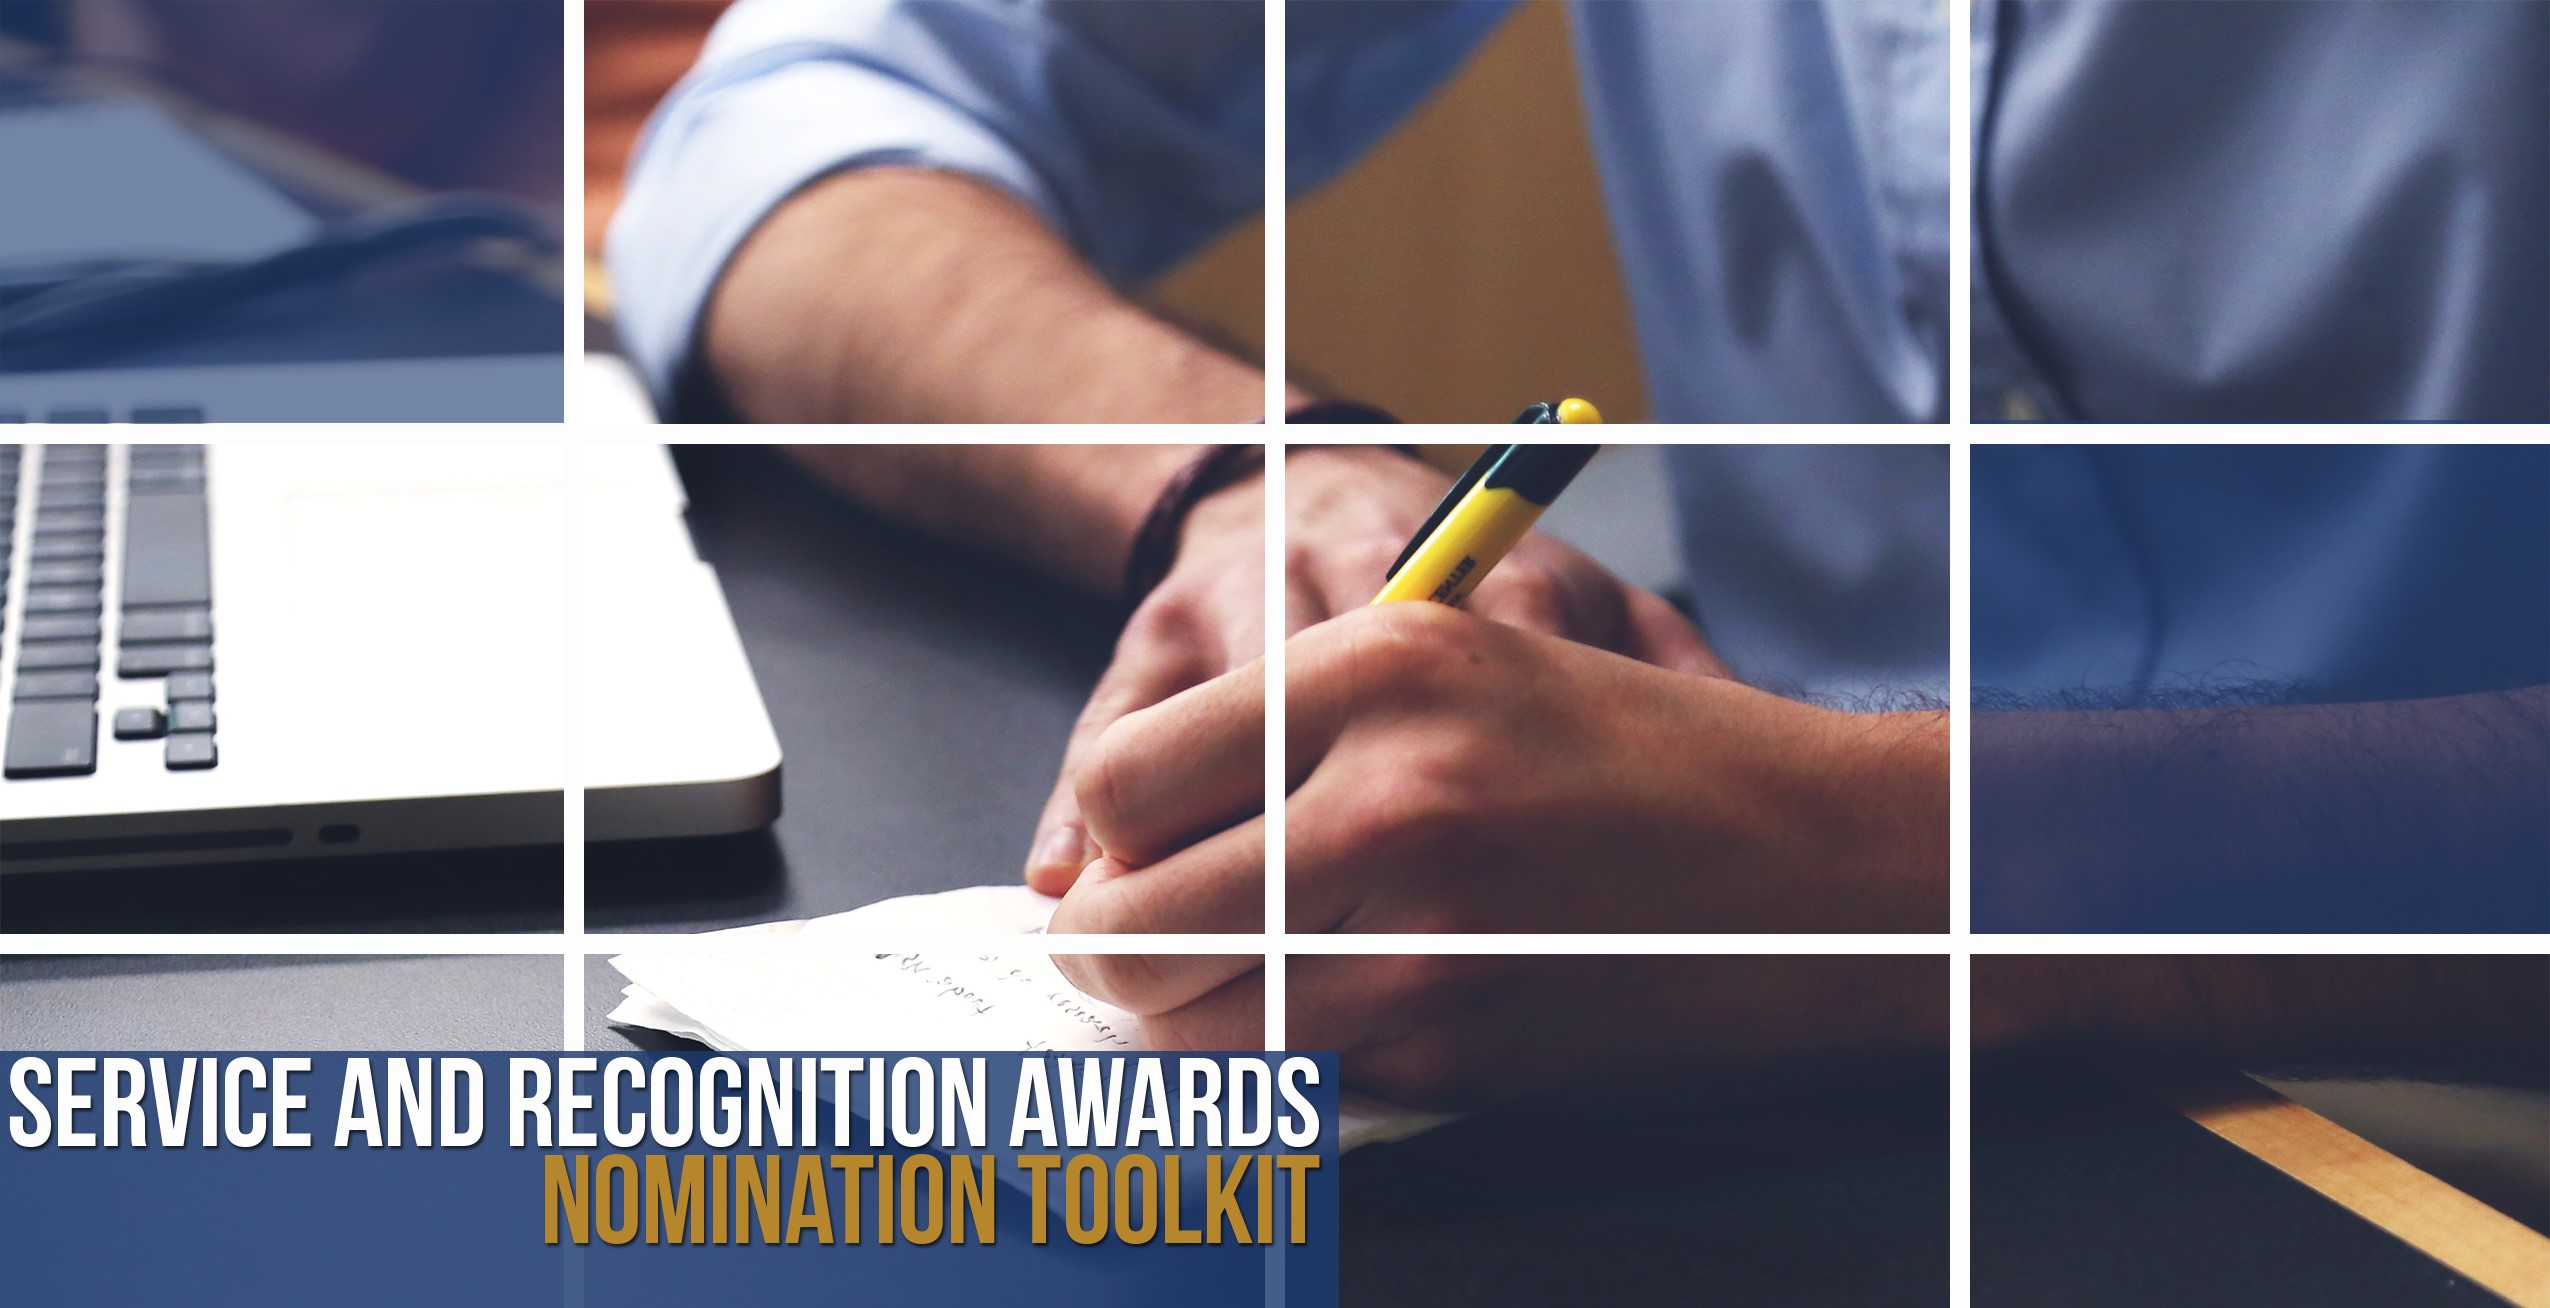 Service and Recognition Awards: Nomination Toolkit